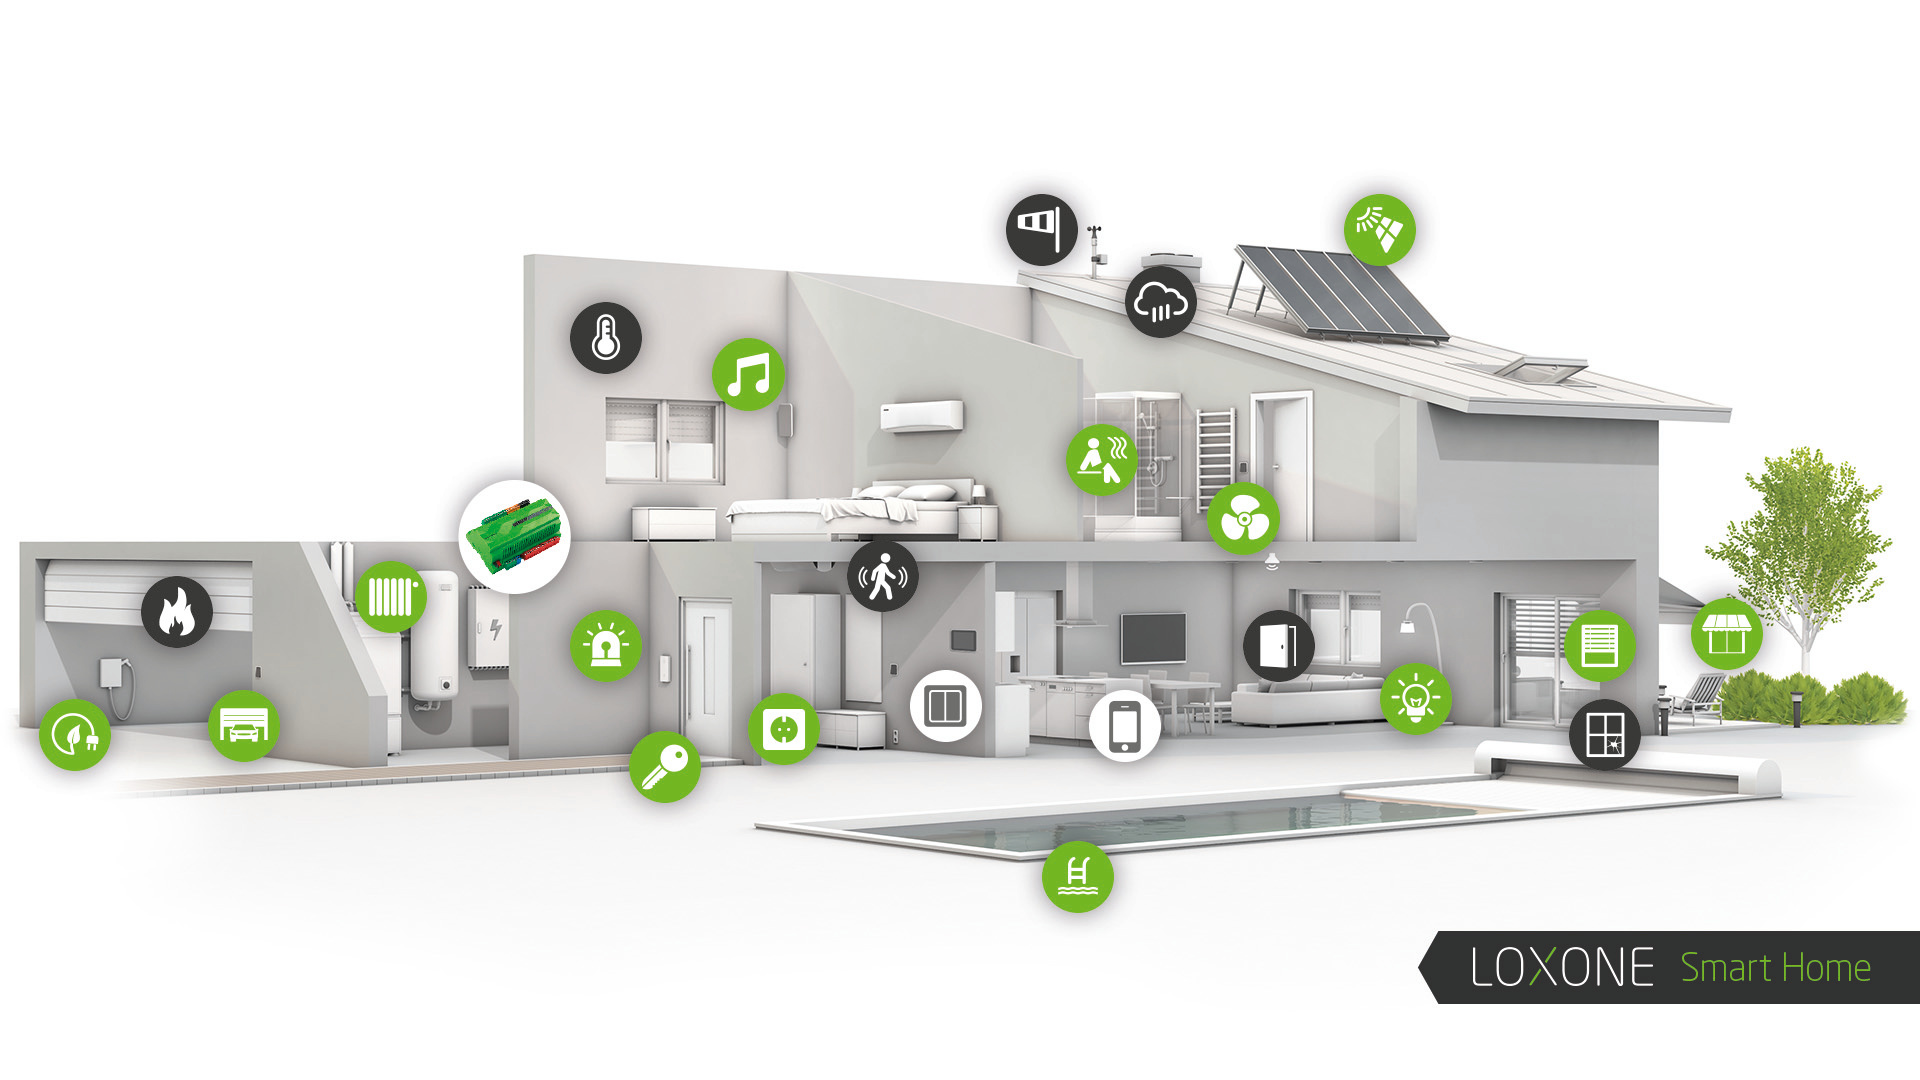 loxone-smart-home-infographic-simple